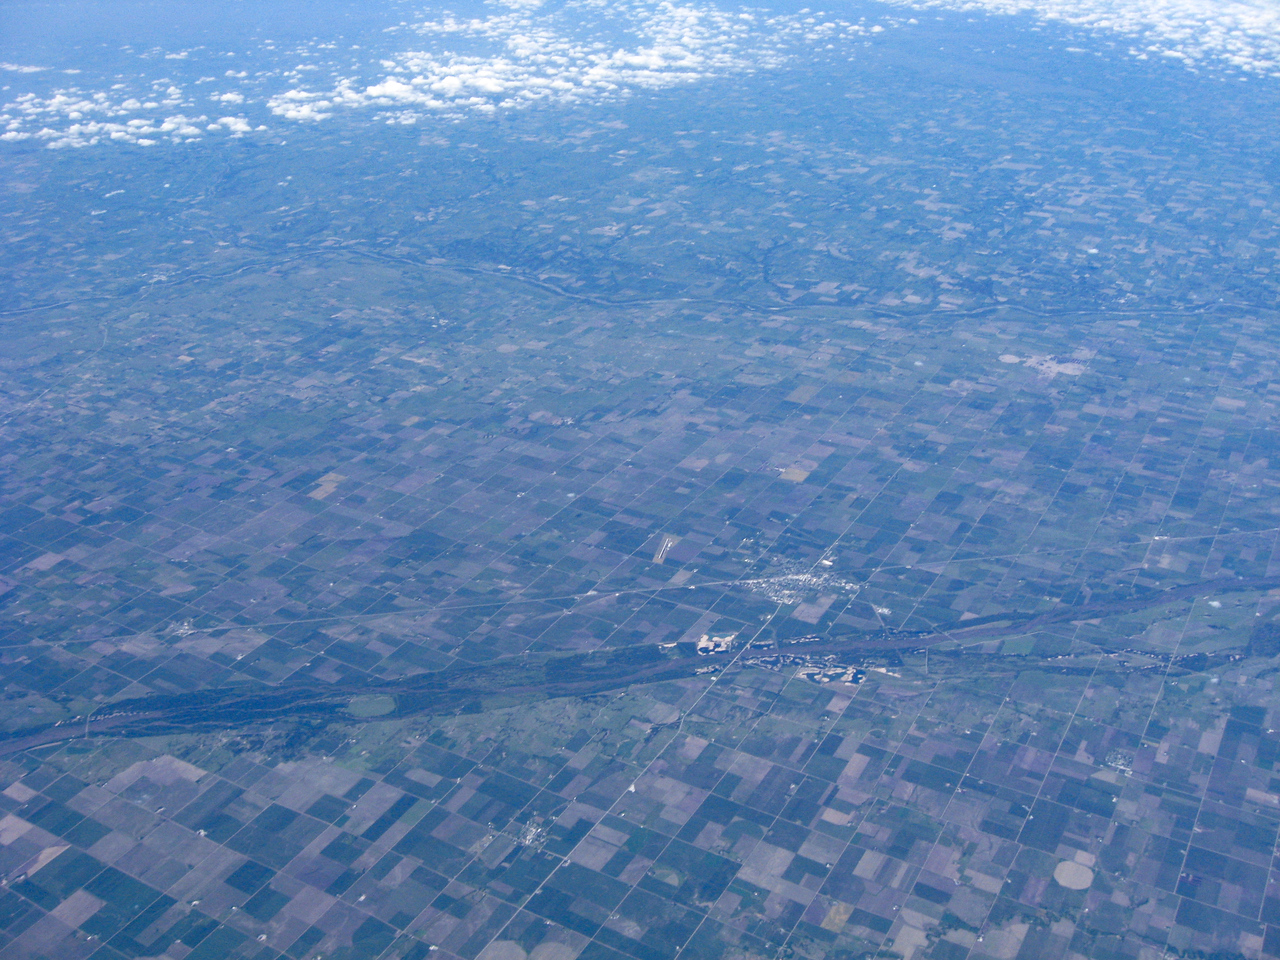 64,000 ft - Looking North-West, Central City, NE